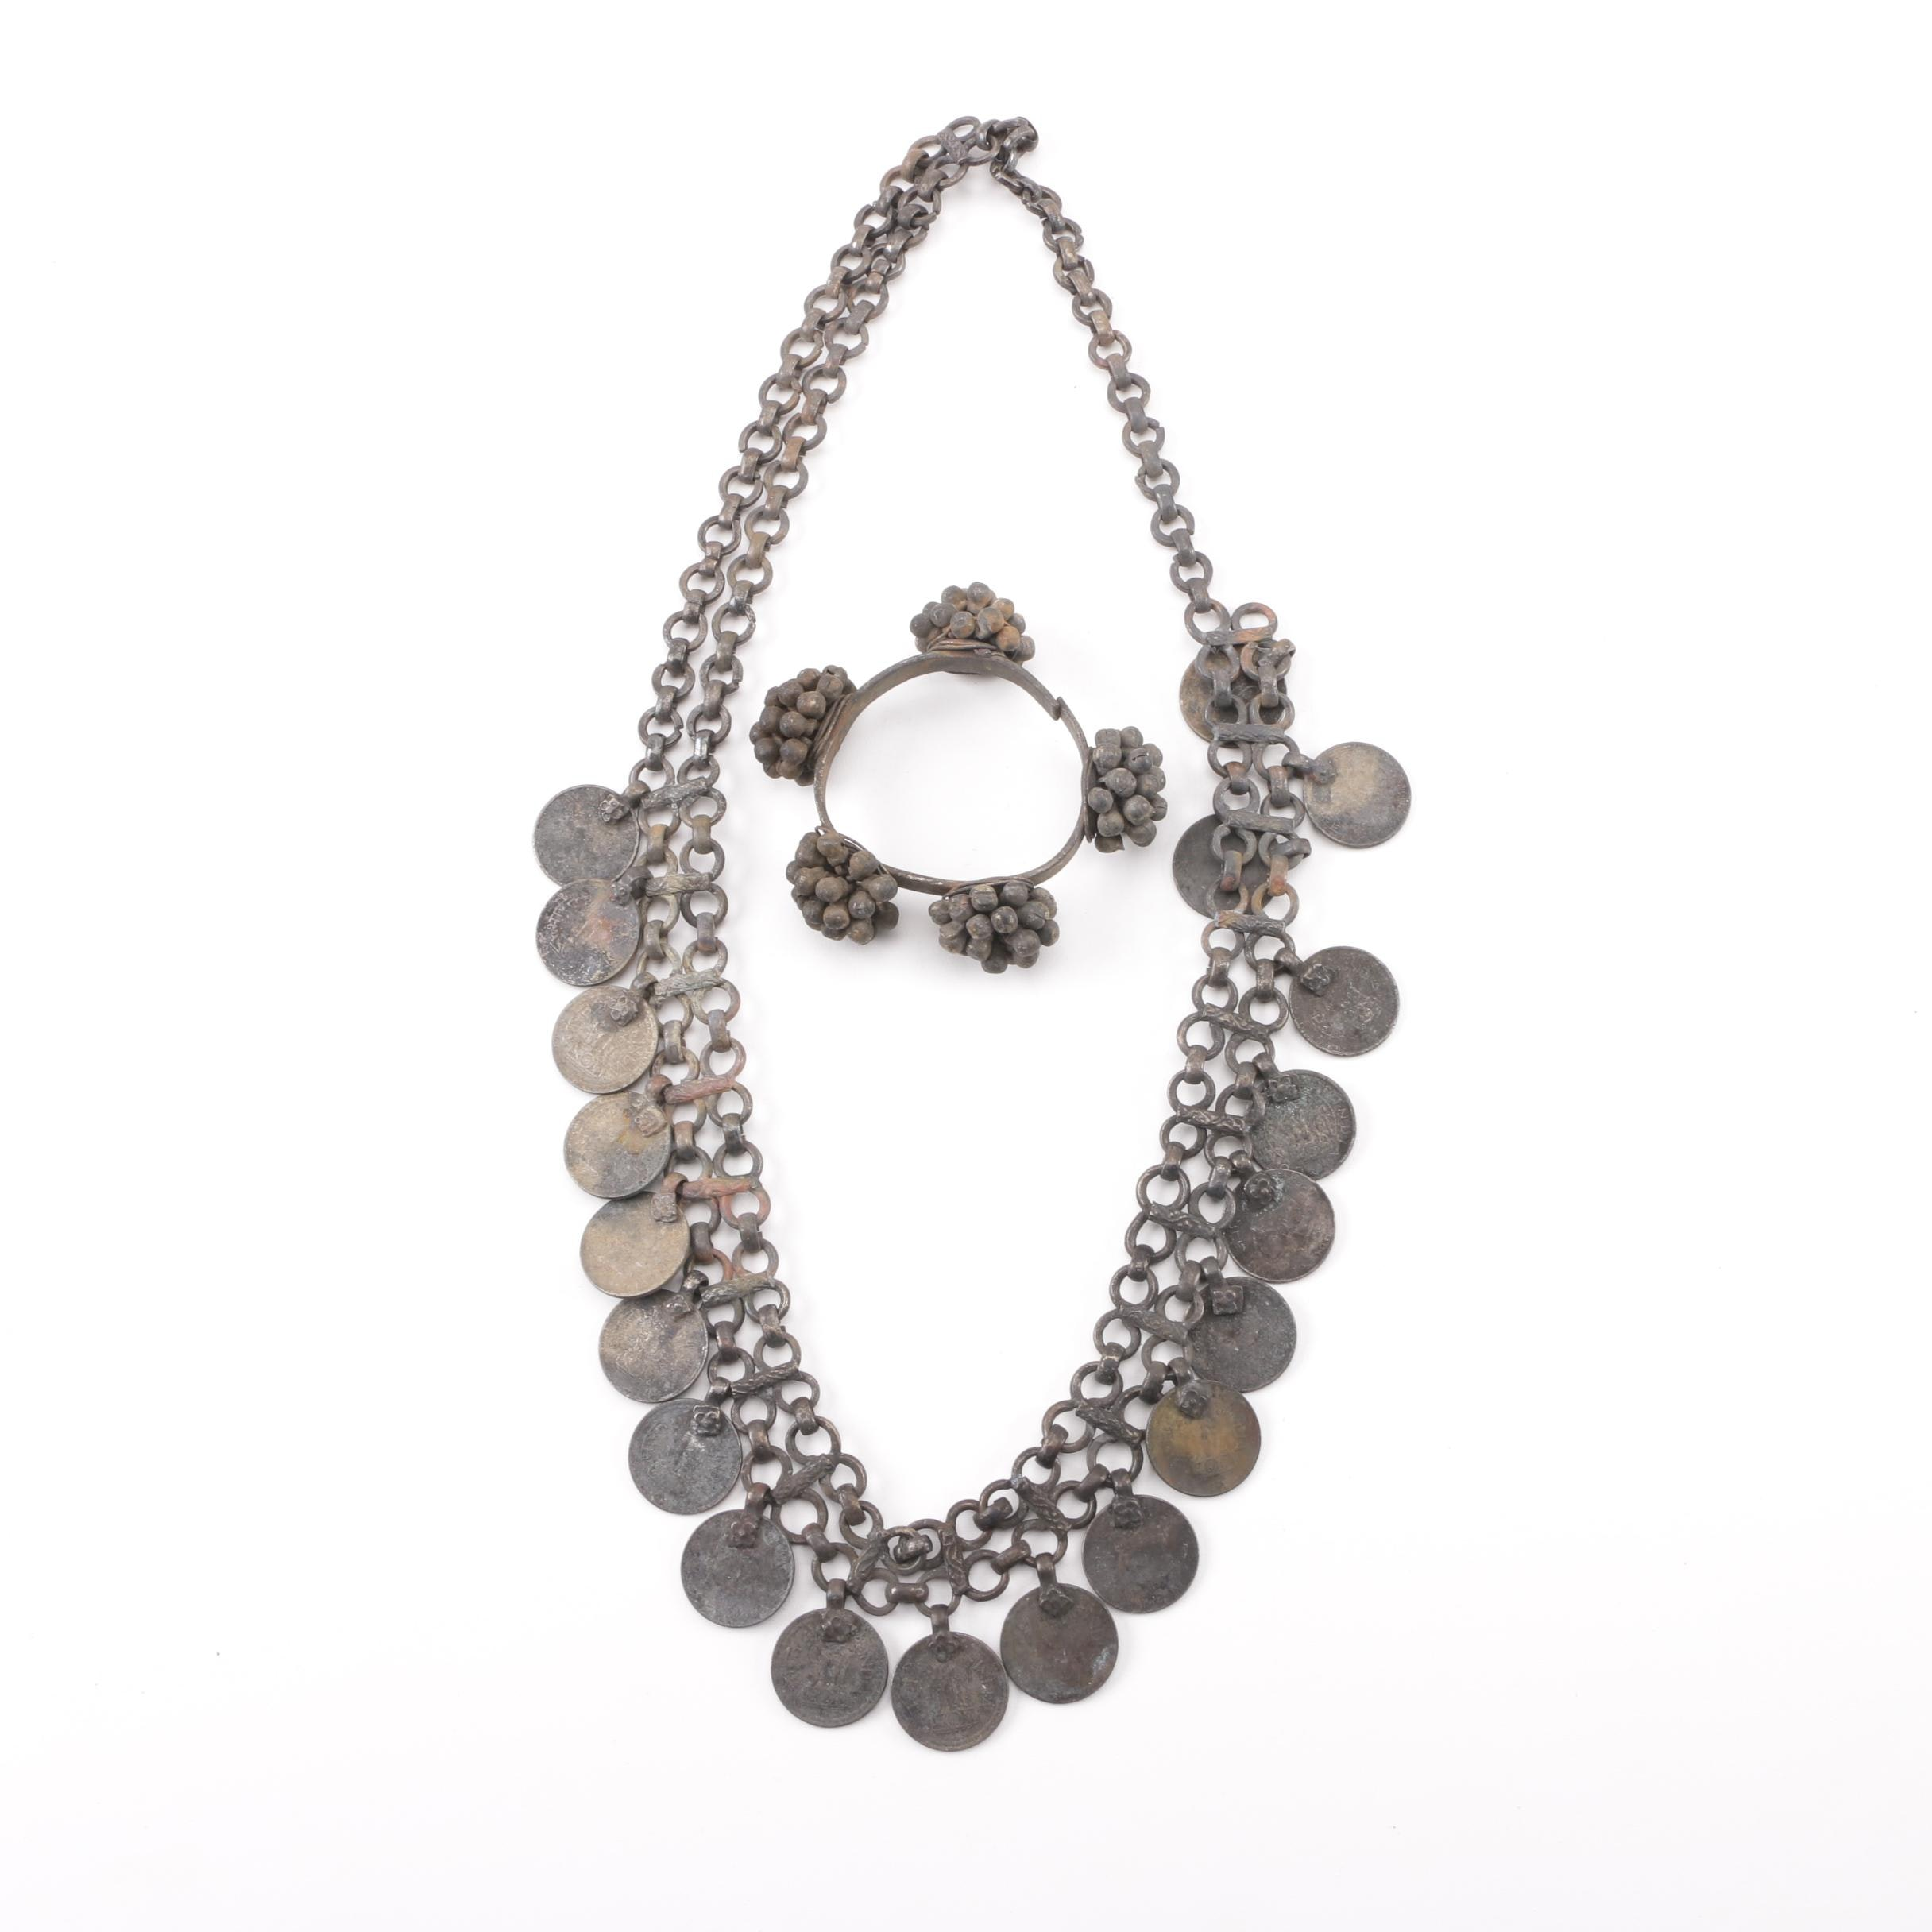 Metal Singing Bell Bracelet and Necklace with Indian 1-Rupee Nickle Coins